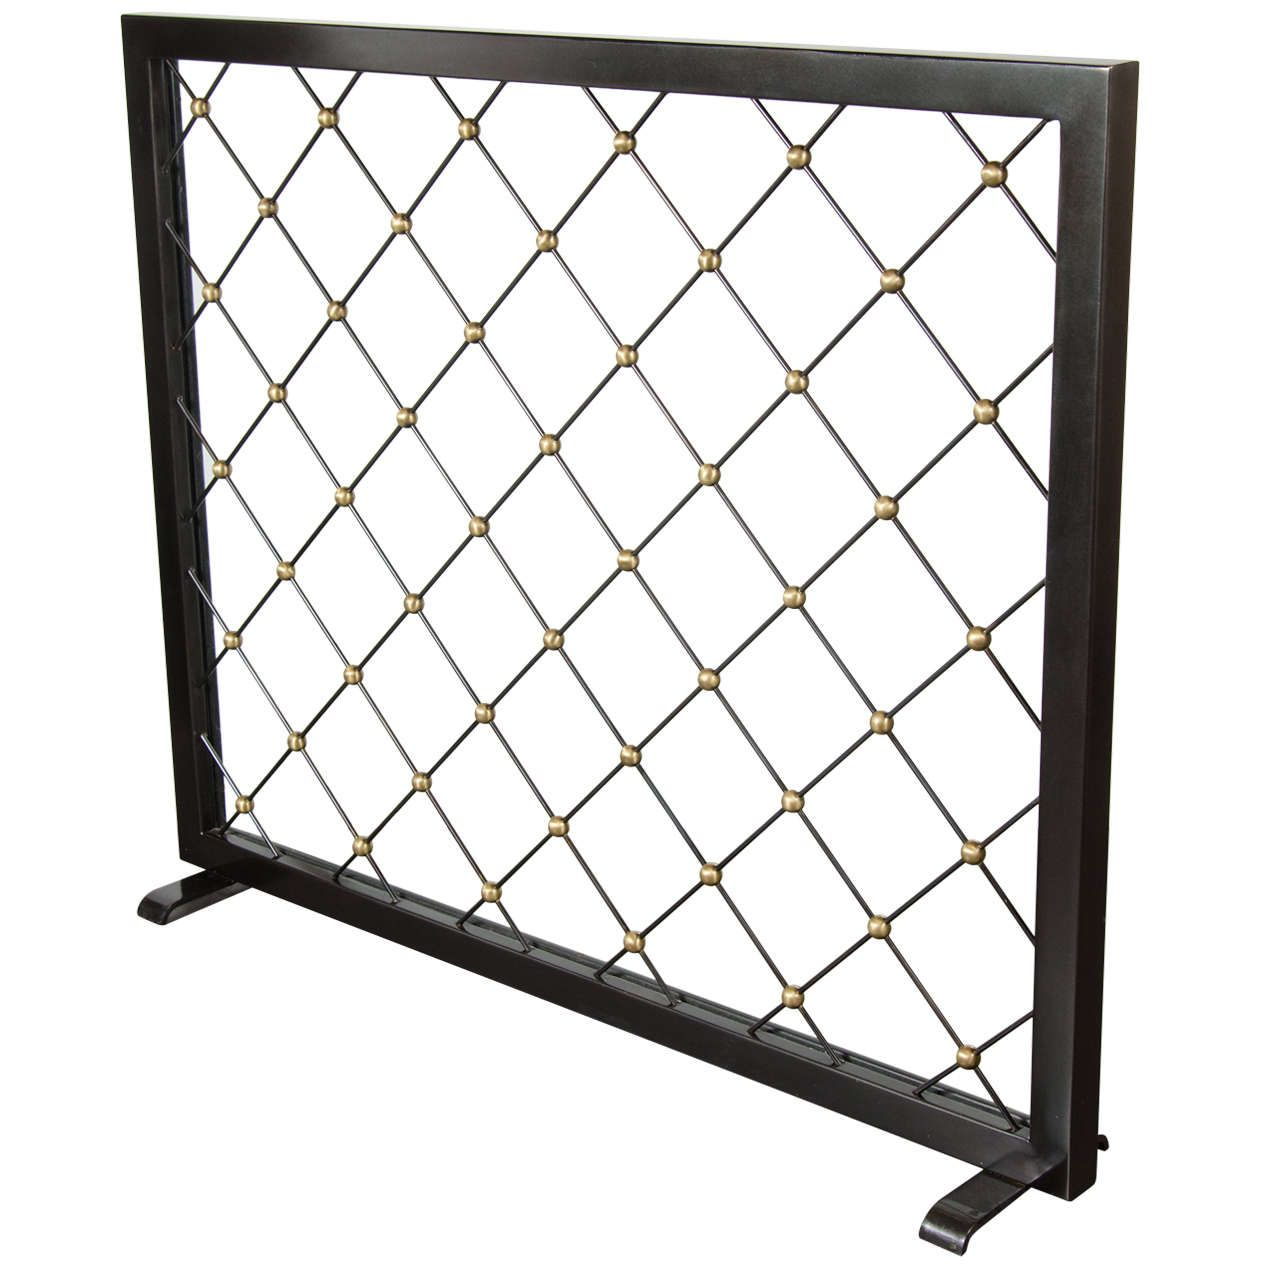 Art Deco Fire Screen With Crosshatch Detailing And Gilt Ball Accents Fireplace Mantel Mantels